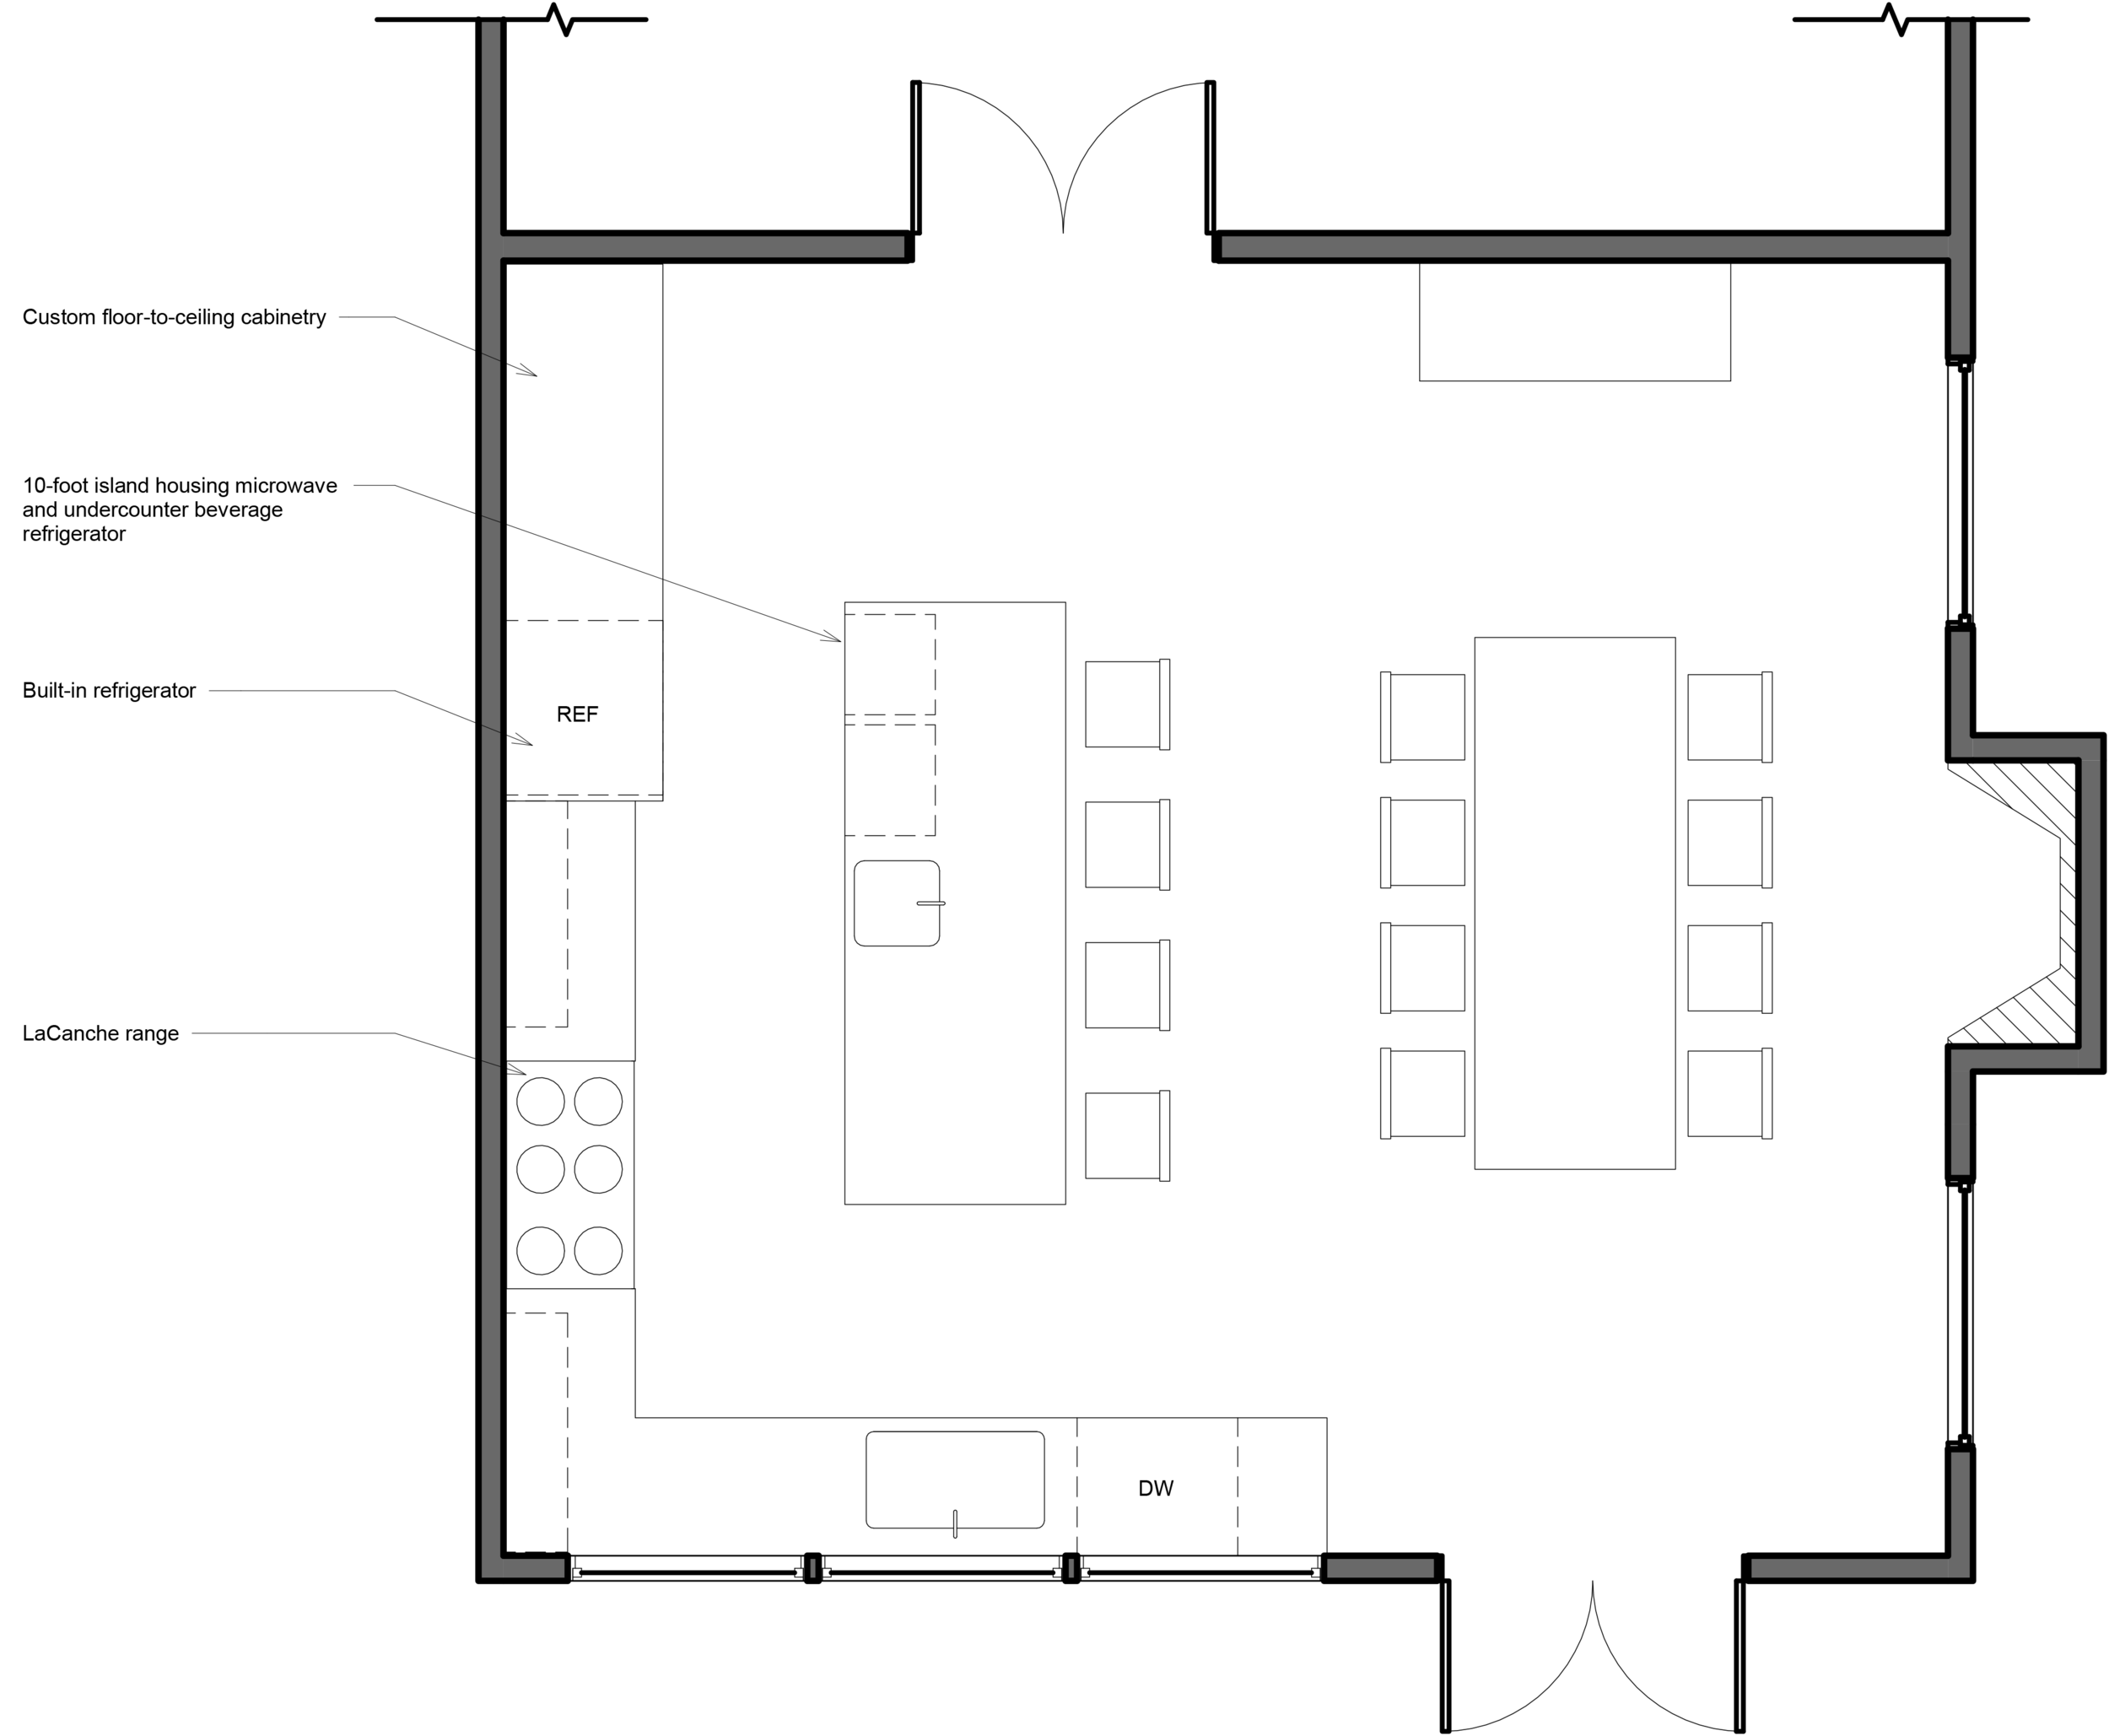 Floorplan-annotated.png